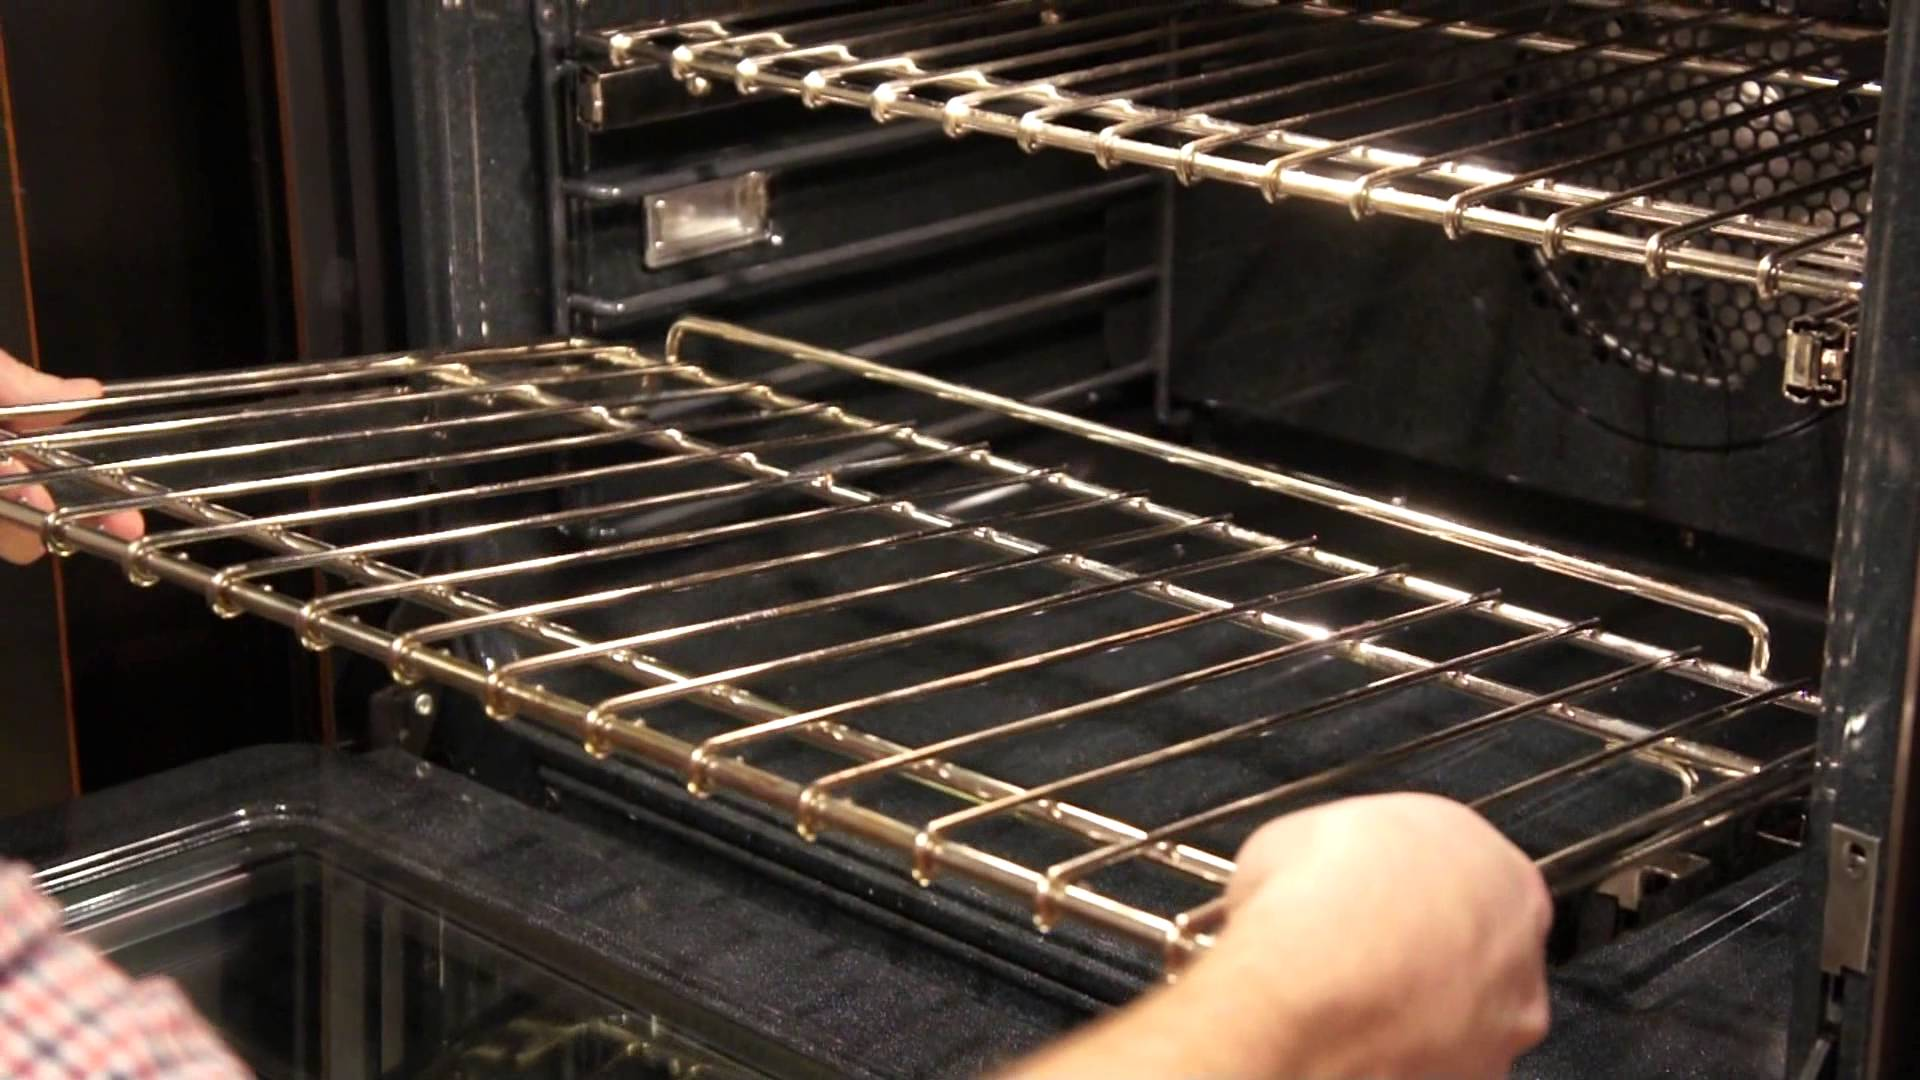 Top 5 Most Amazing Ways To Clean Oven Racks Ideas By Mr